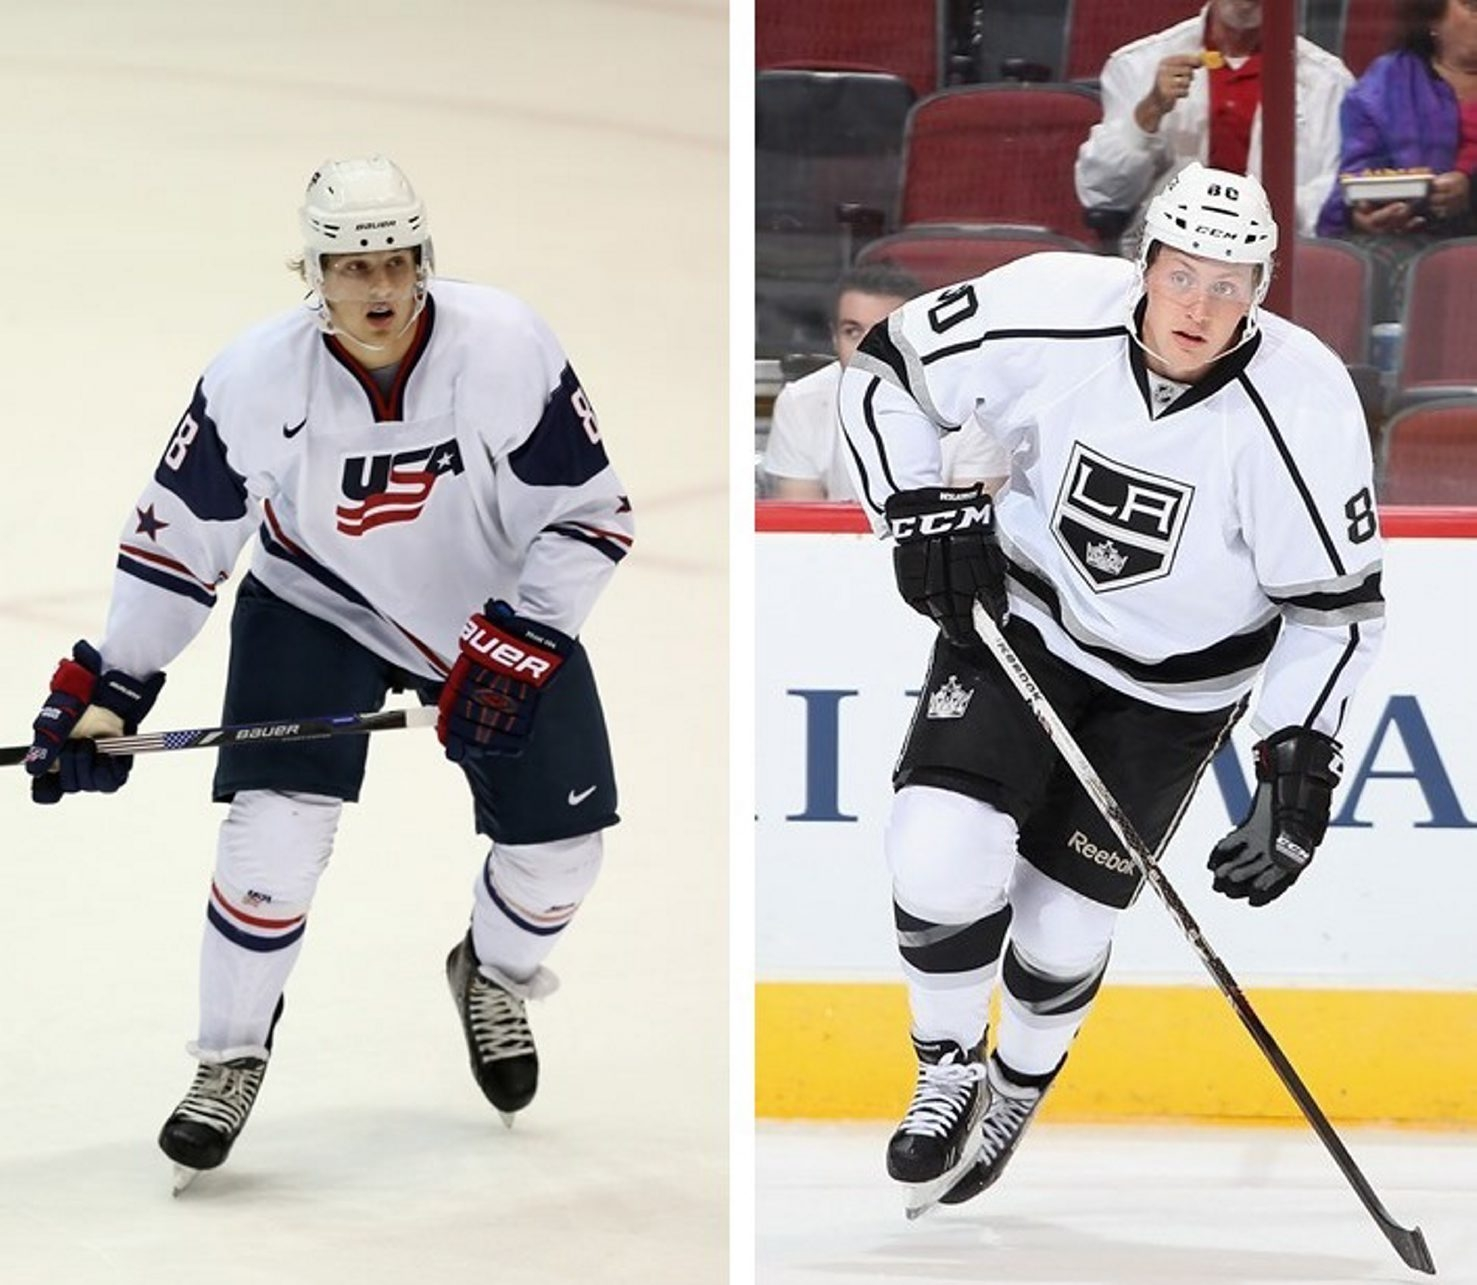 The Sabres have acquired Hudson Fasching, left, and Nicolas Deslauriers from the L.A. Kings. (Getty Images)